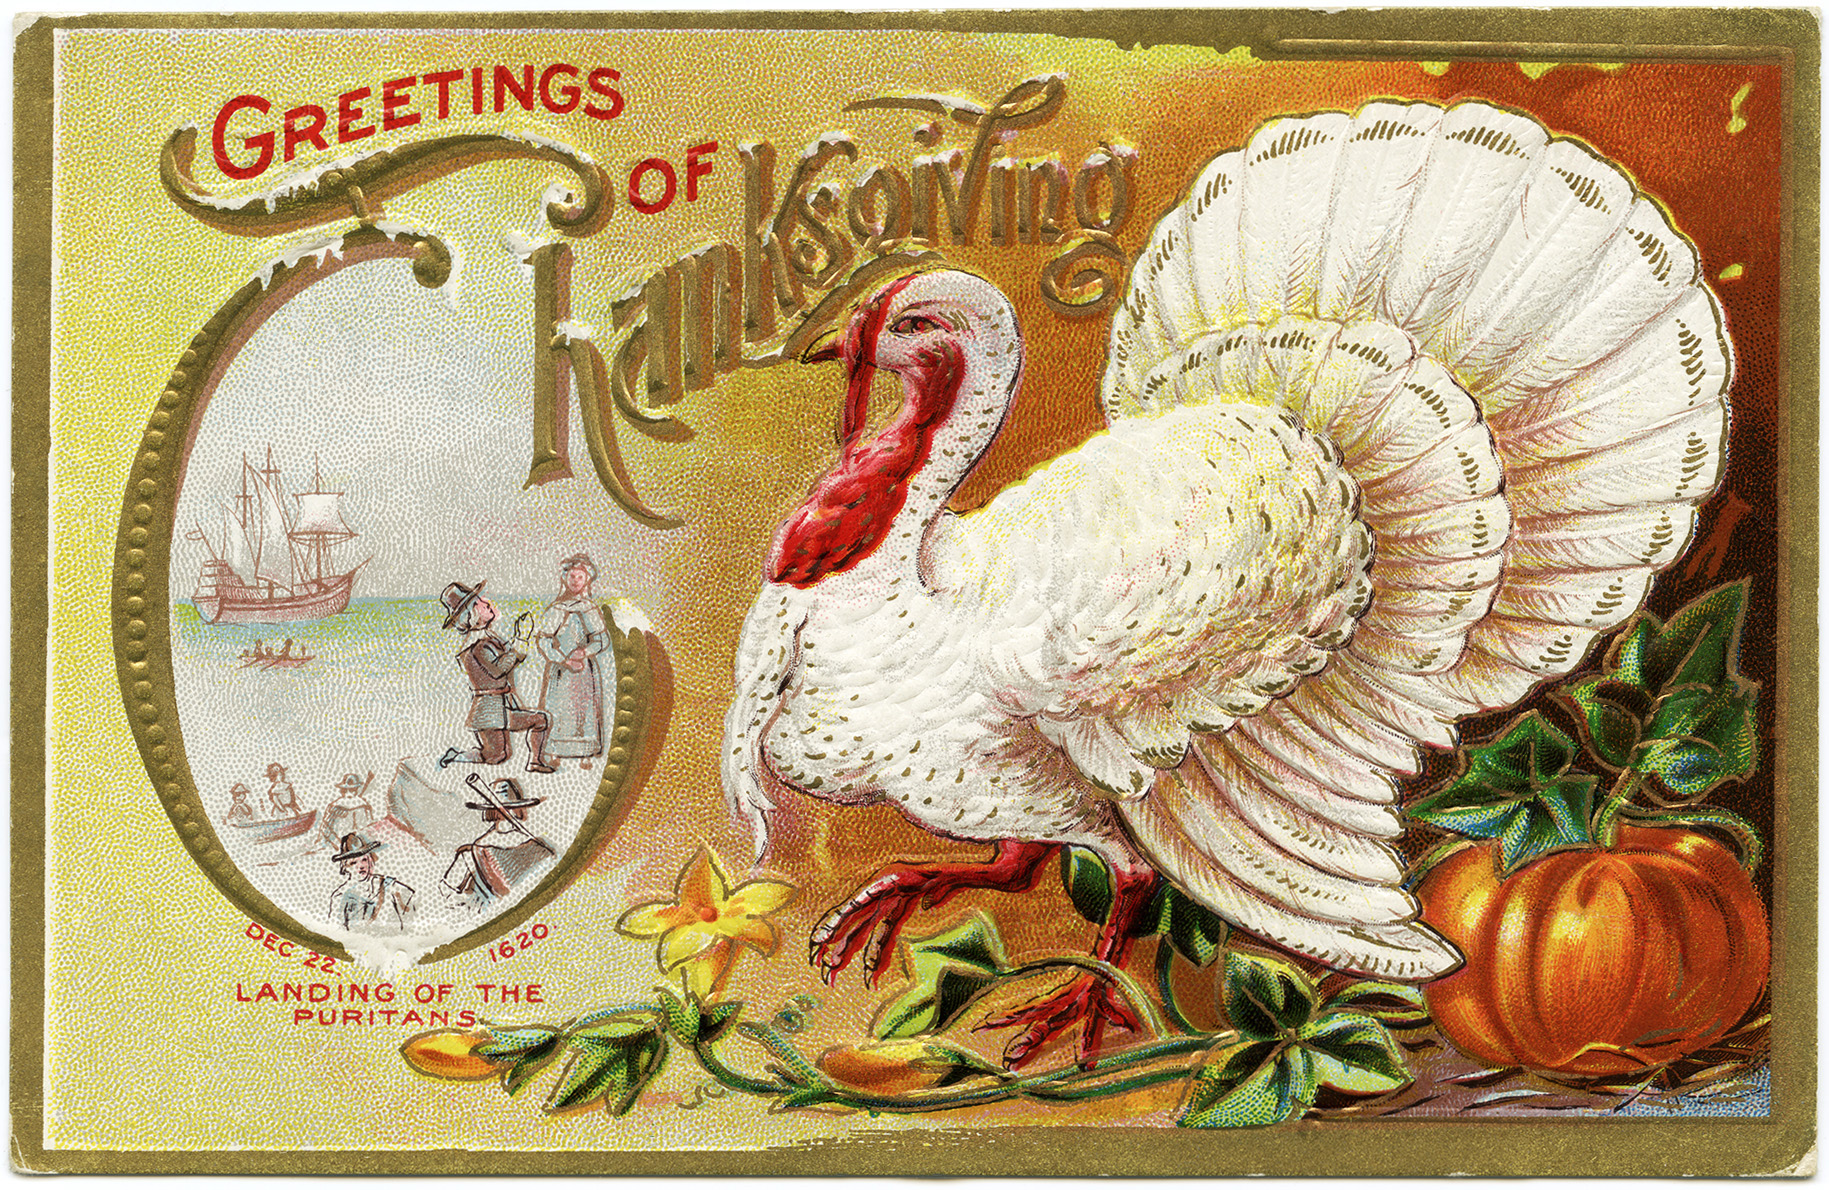 free vintage holiday printable, white turkey image, old thanksgiving card, antique thanksgiving turkey graphics